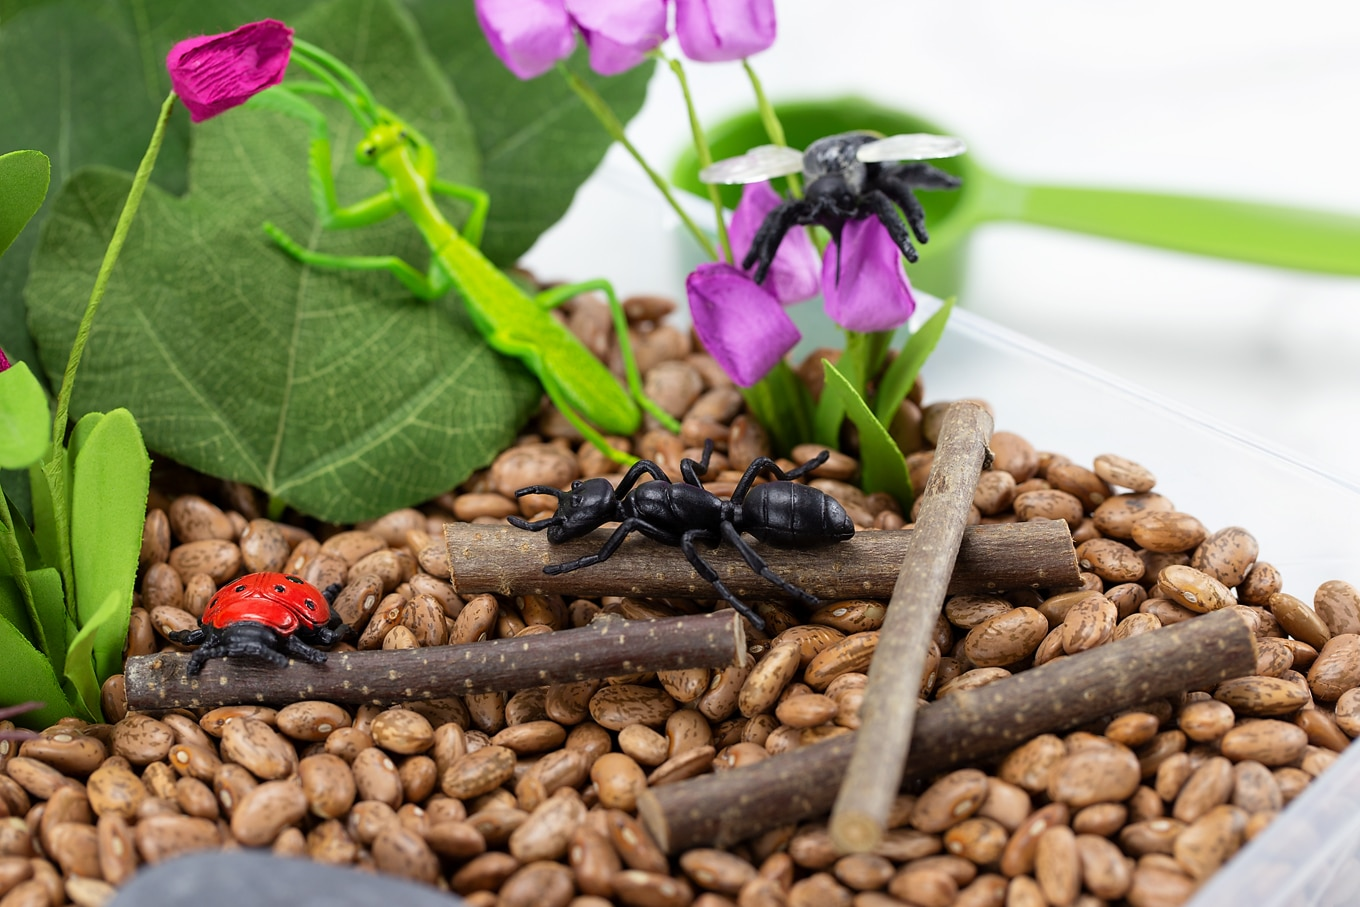 Bug Toys, Sticks, and Beans in Bug Sensory Bin